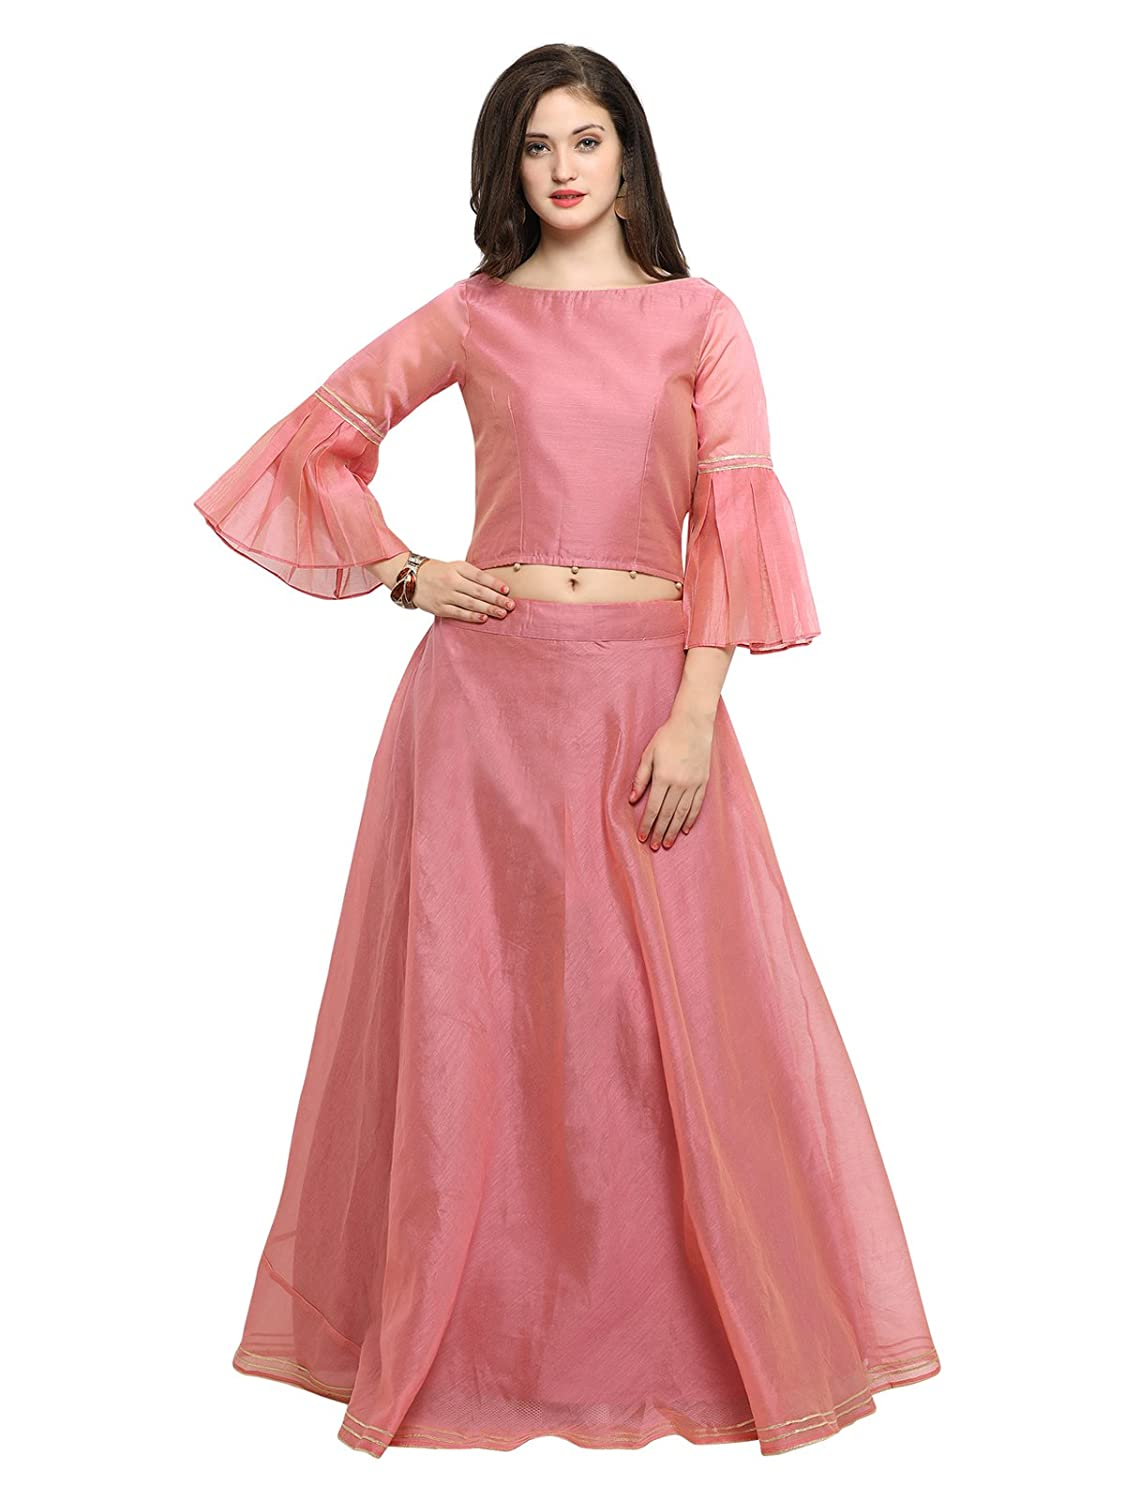 9aab342f4d Inddus Women's Cotton Top with Chanderi Flared Skirt (Pink, Free Size):  Amazon.in: Clothing & Accessories